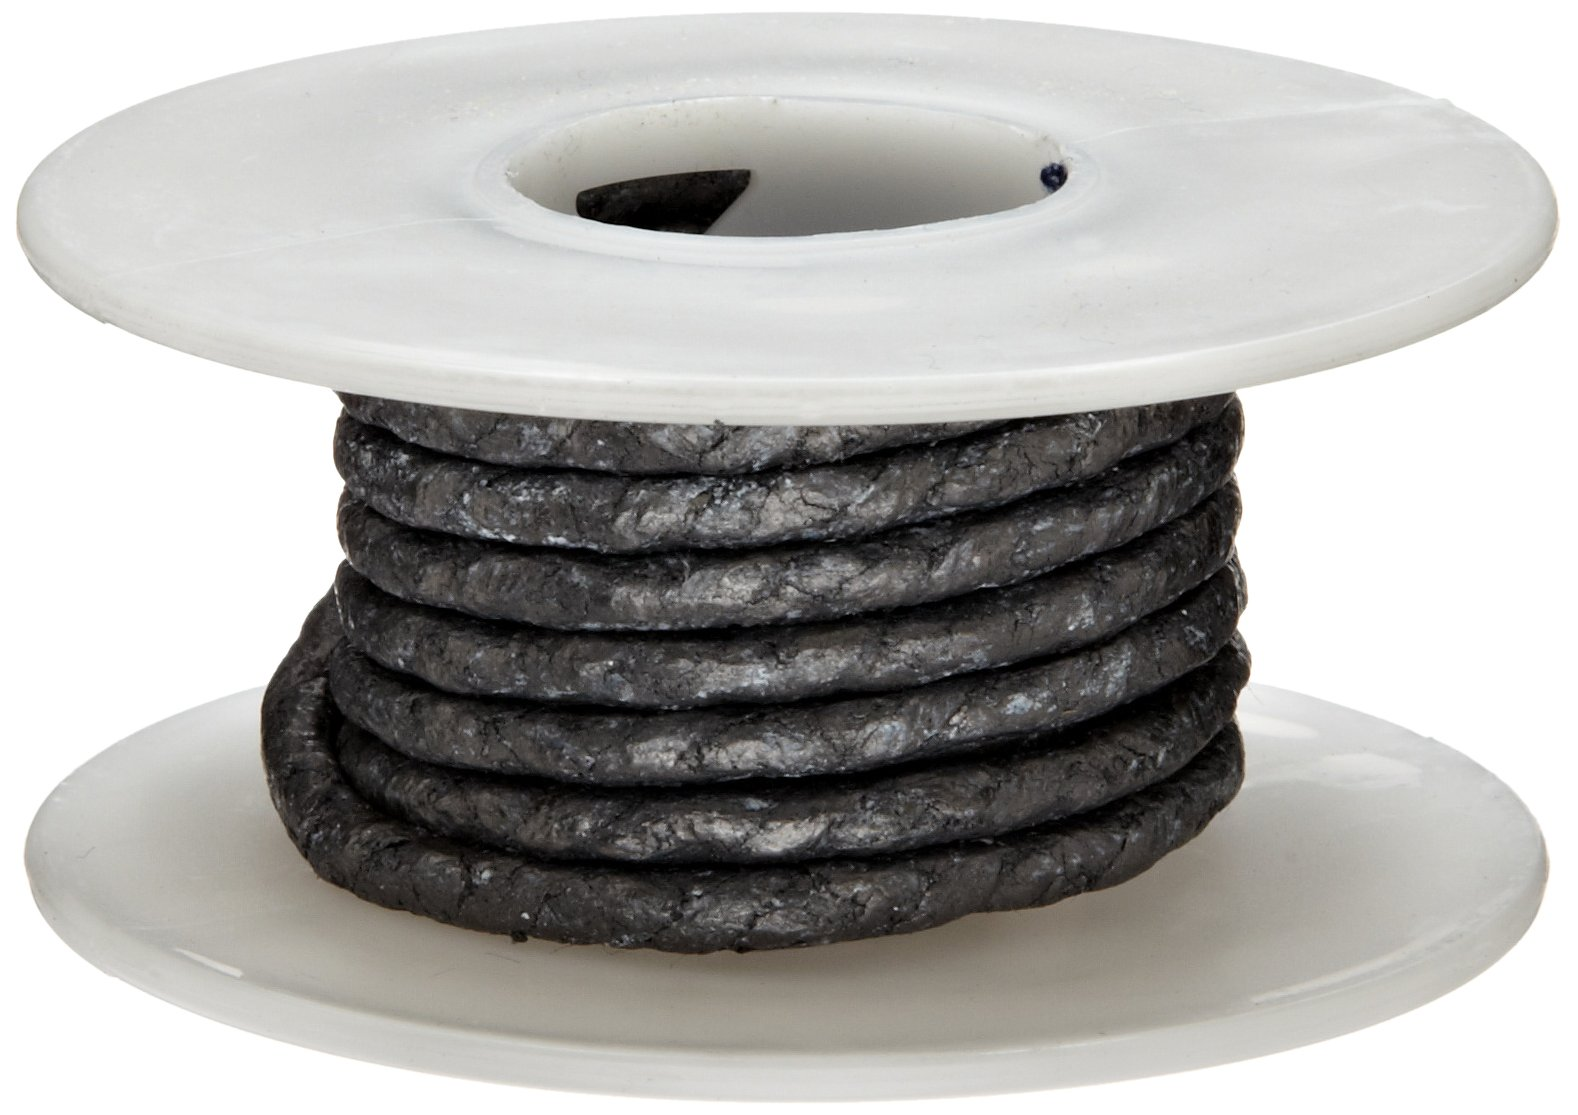 Palmetto 1585 Series Carbon with Graphite Coating Compression Packing Seal, Dull Gray, 3/4'' Square, 25' Length